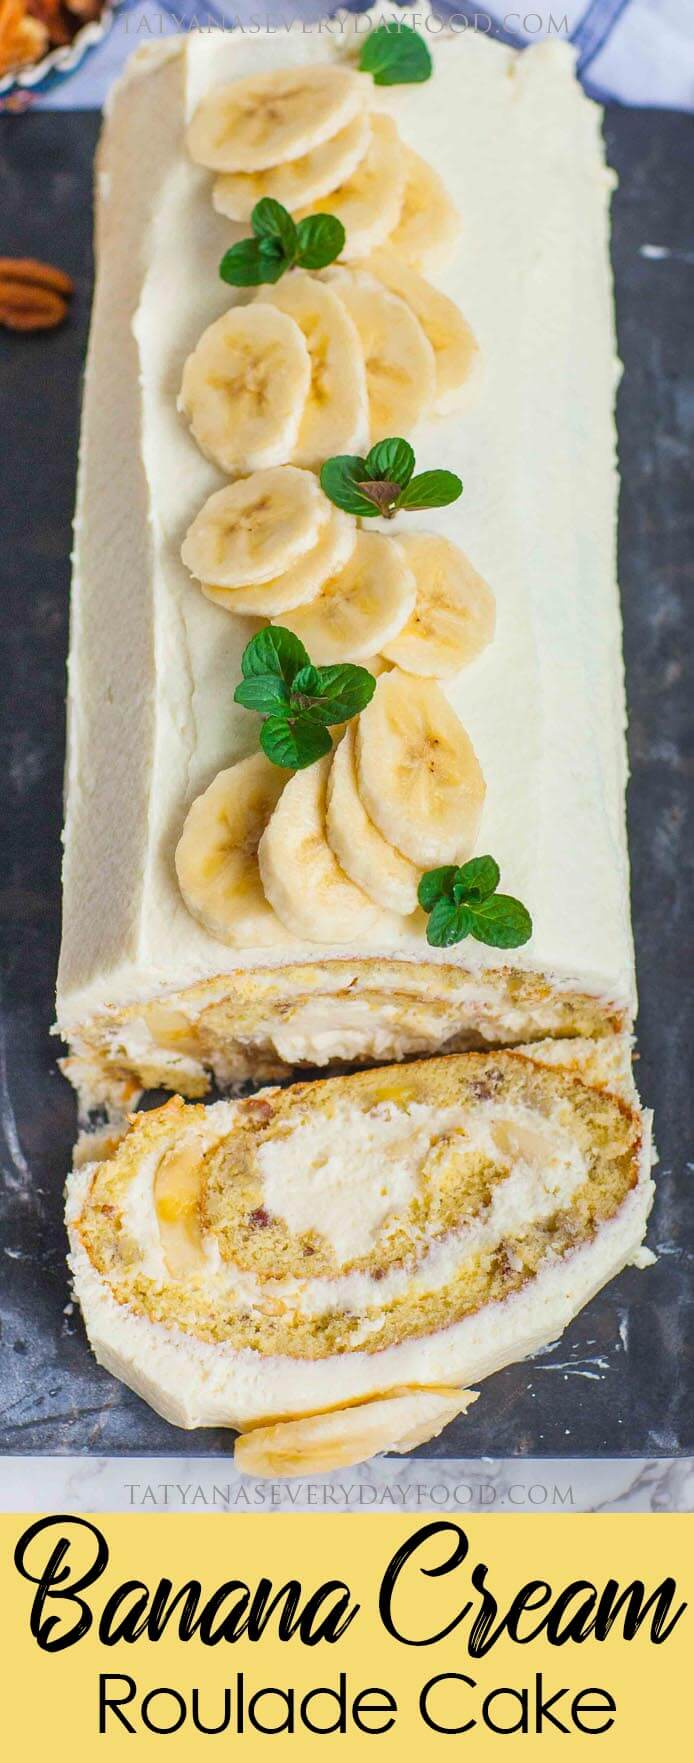 Amazing Banana Cream Cake Roll recipe with video